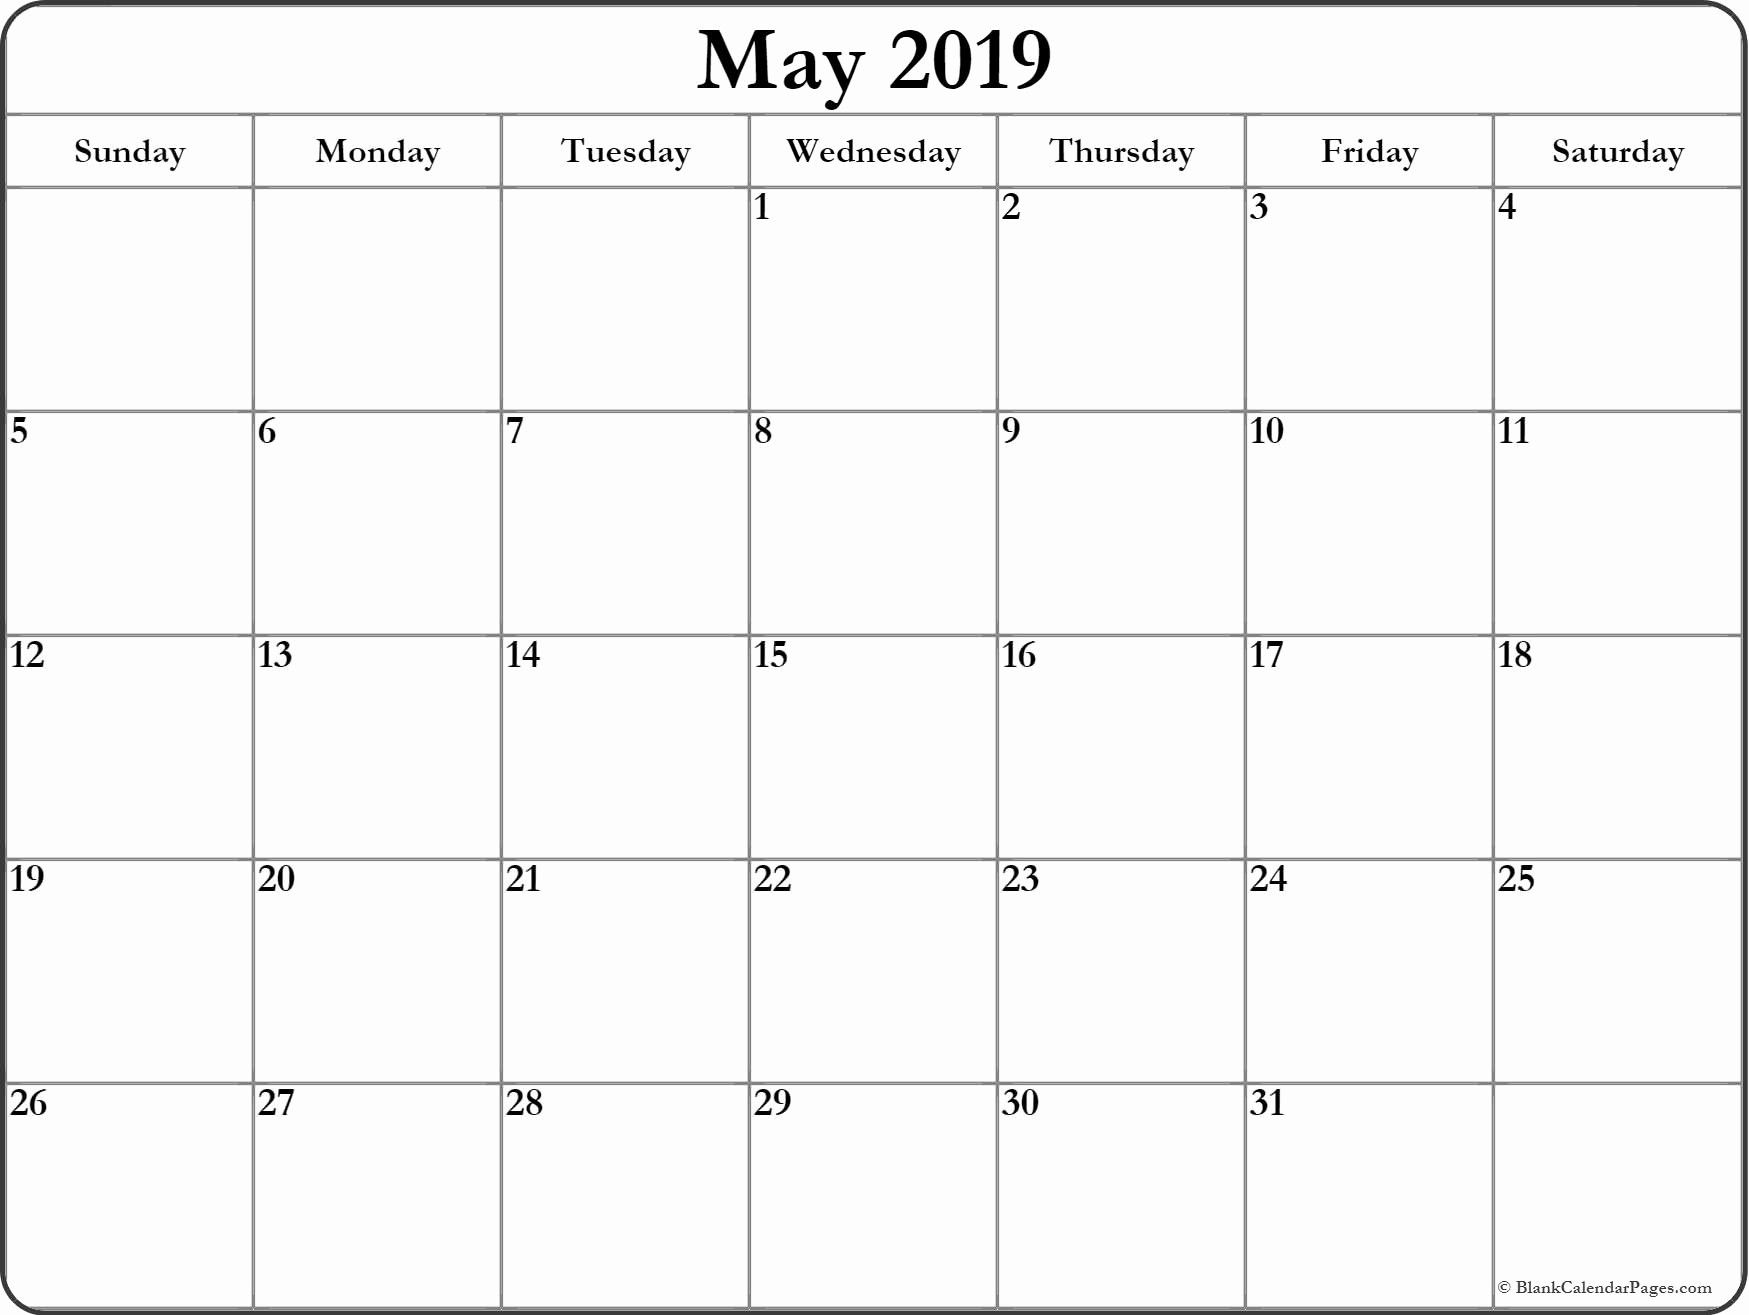 Free Printable Weekly Calendar 2019 Best Of May 2019 Blank Calendar Templates